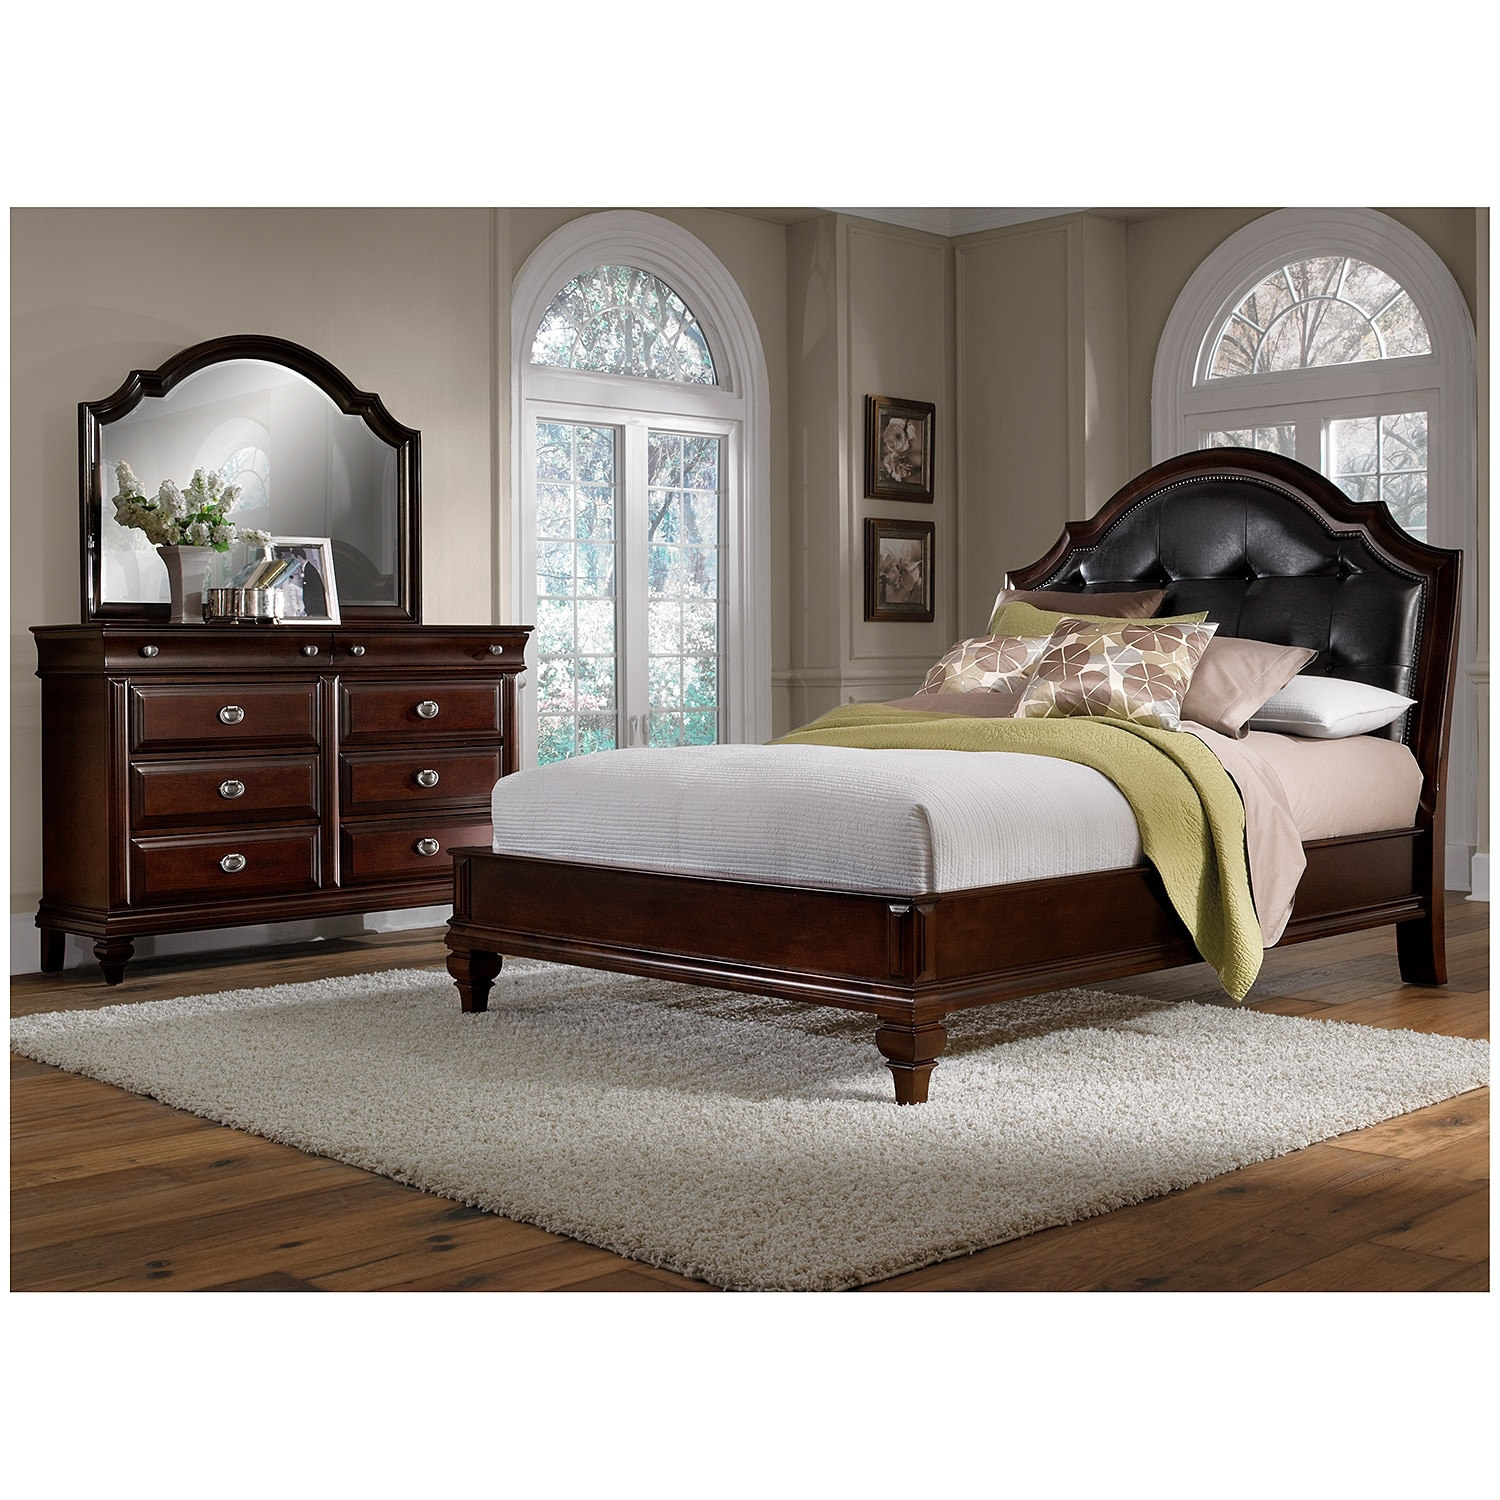 Charmant Bedroom Furniture   Manhattan 5 Piece Queen Upholstered Bedroom Set   Cherry